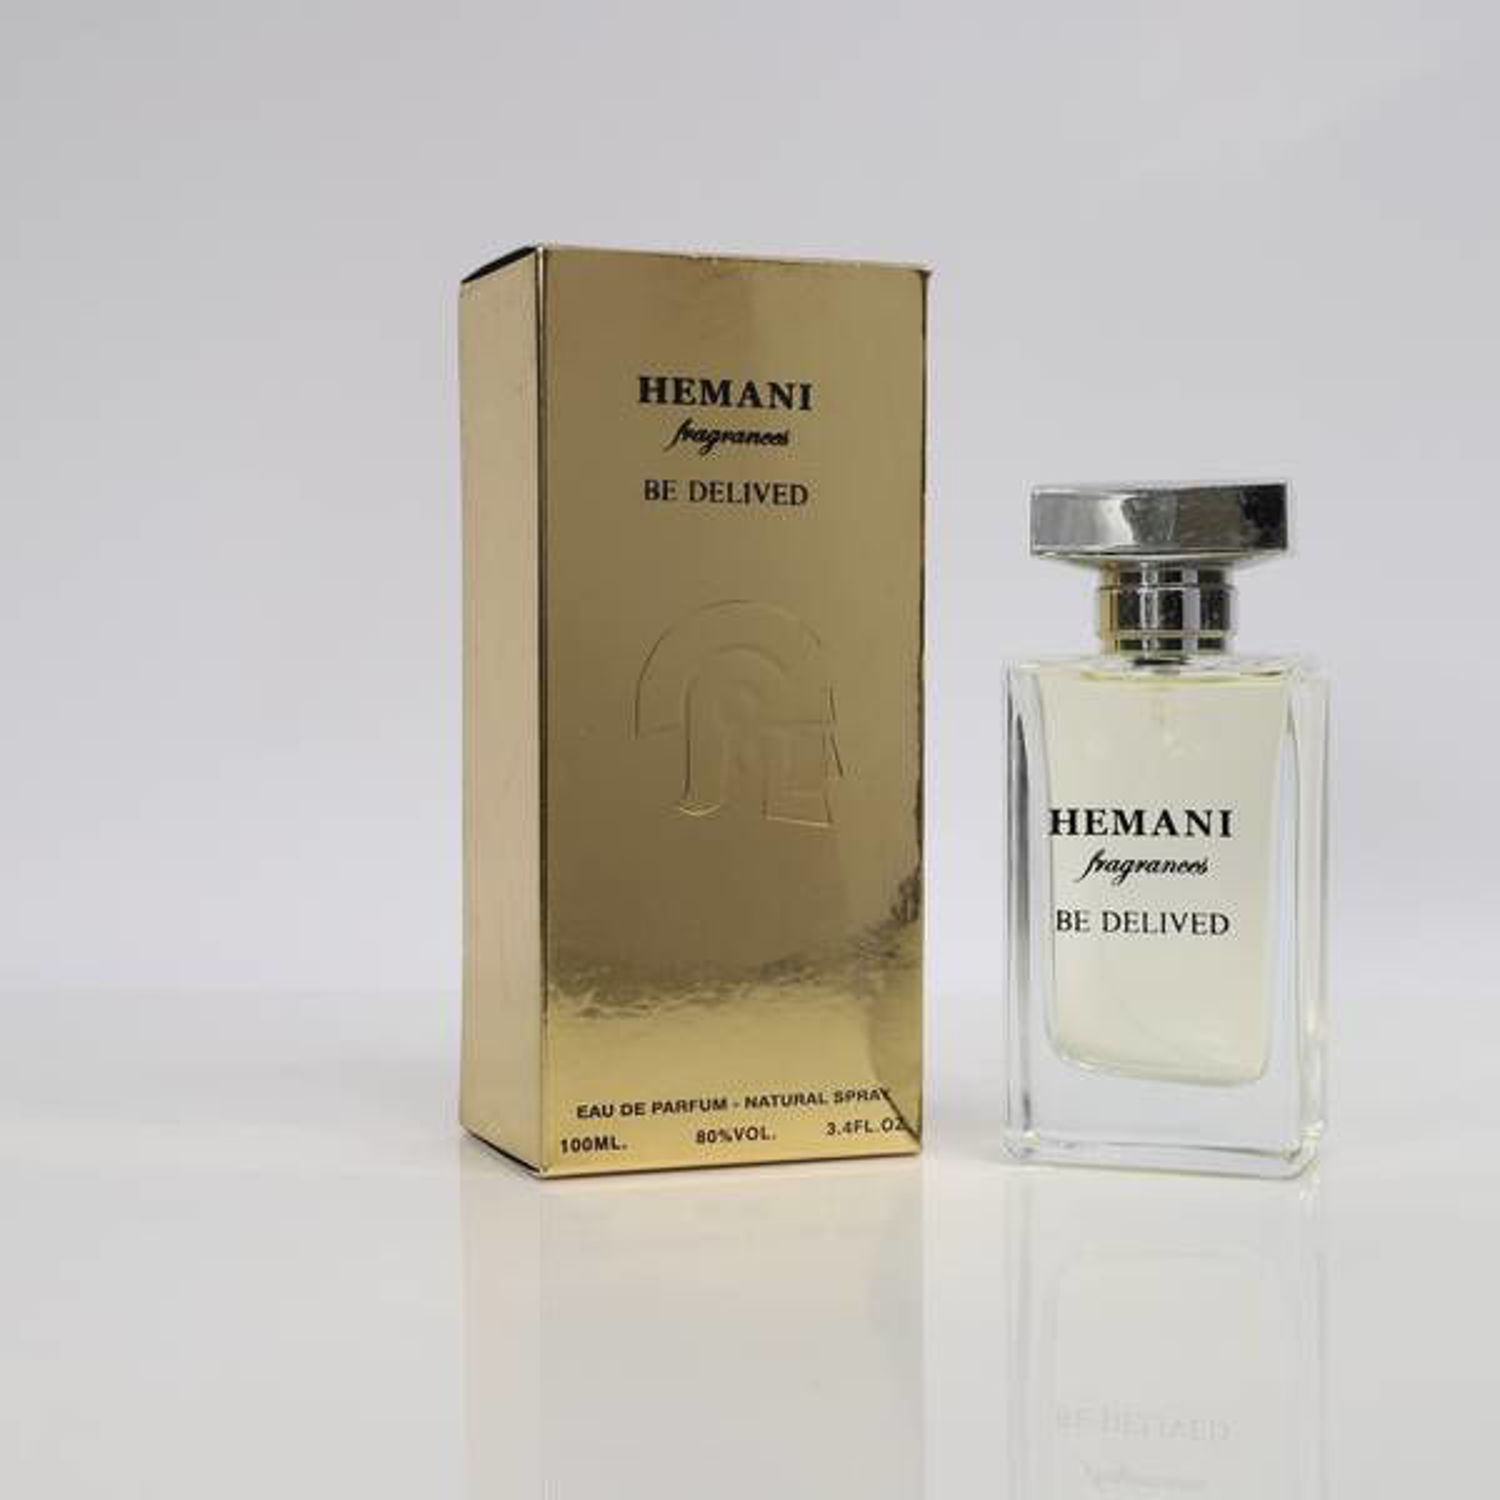 Hemani Be Delived Perfume